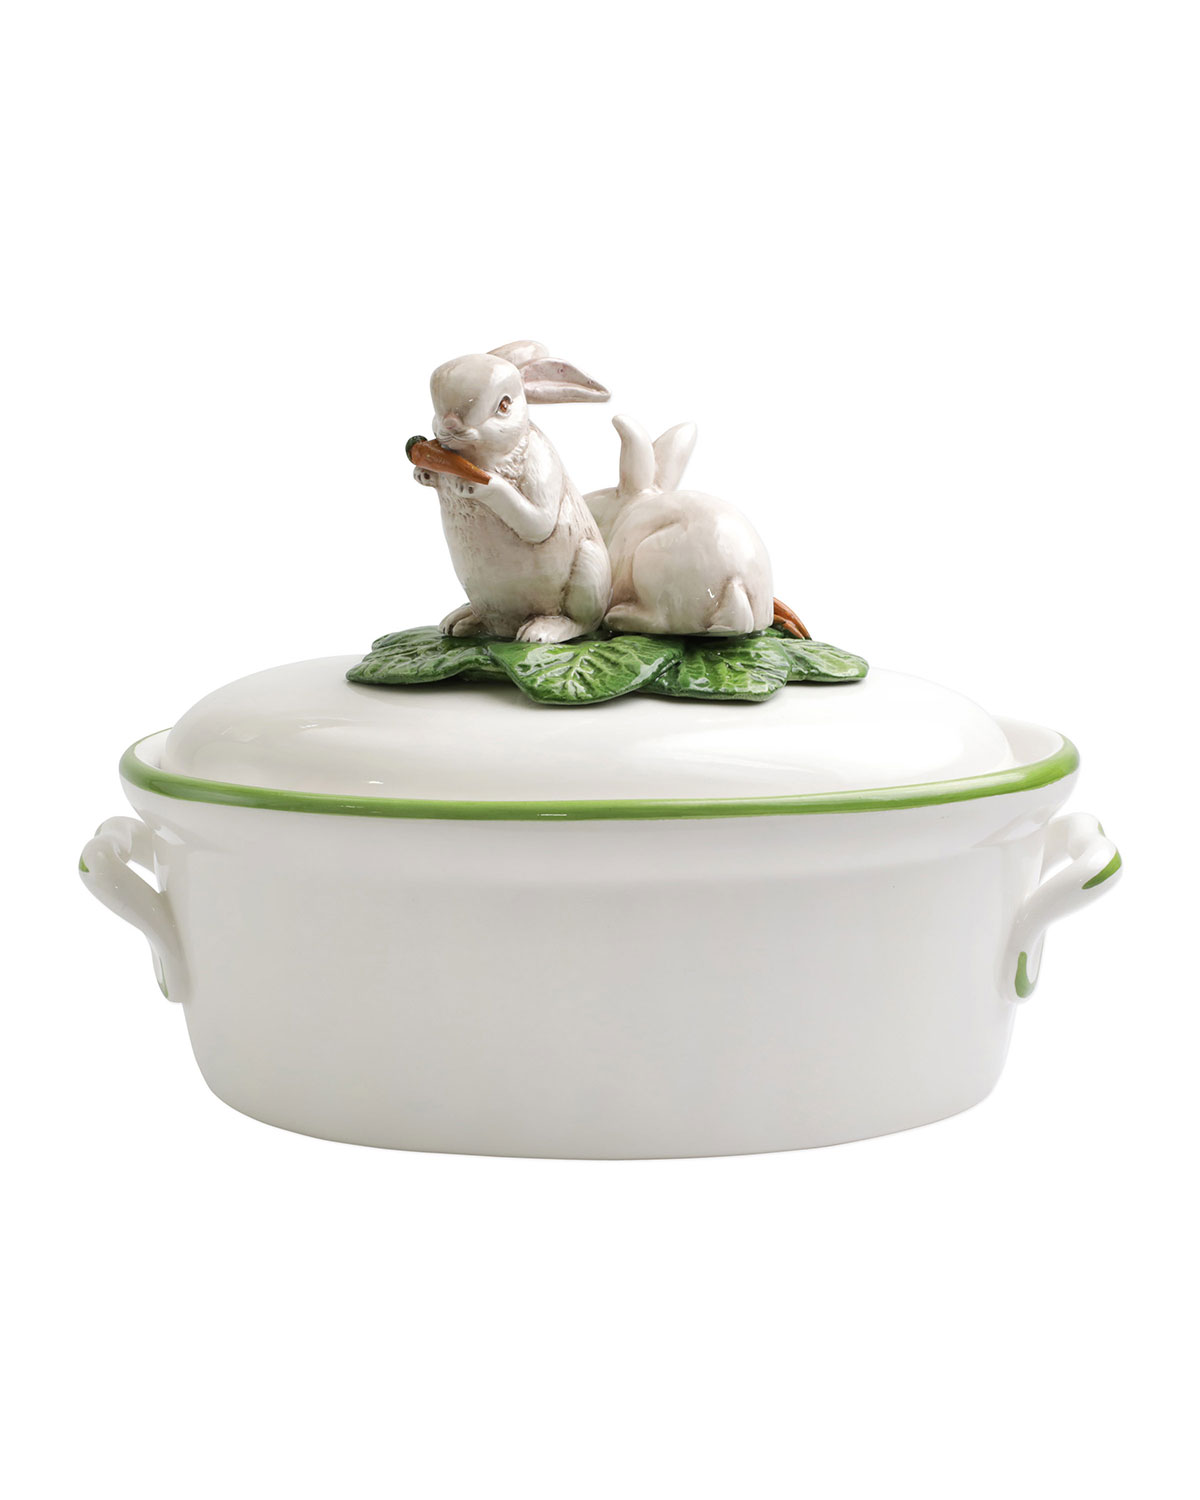 Vietri SPRING VEGETABLES TUREEN WITH BUNNIES